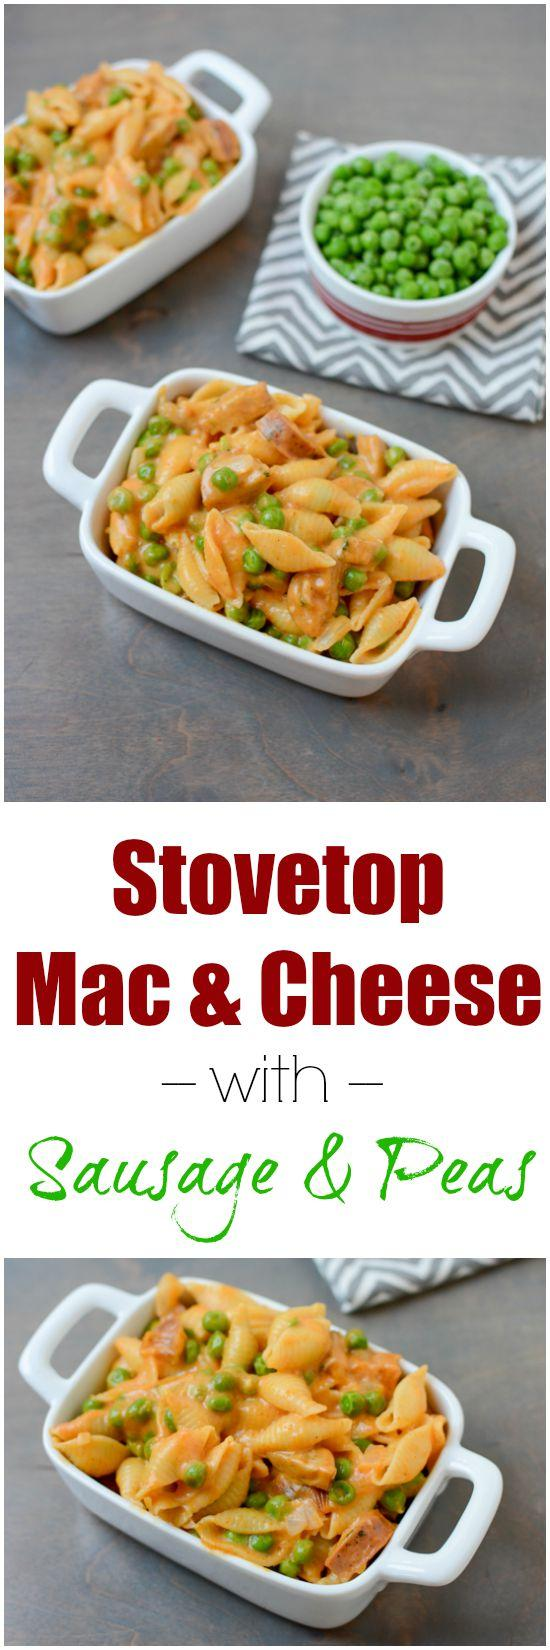 This recipe for Stovetop Mac and Cheese with Sausage and Peas is quick ...